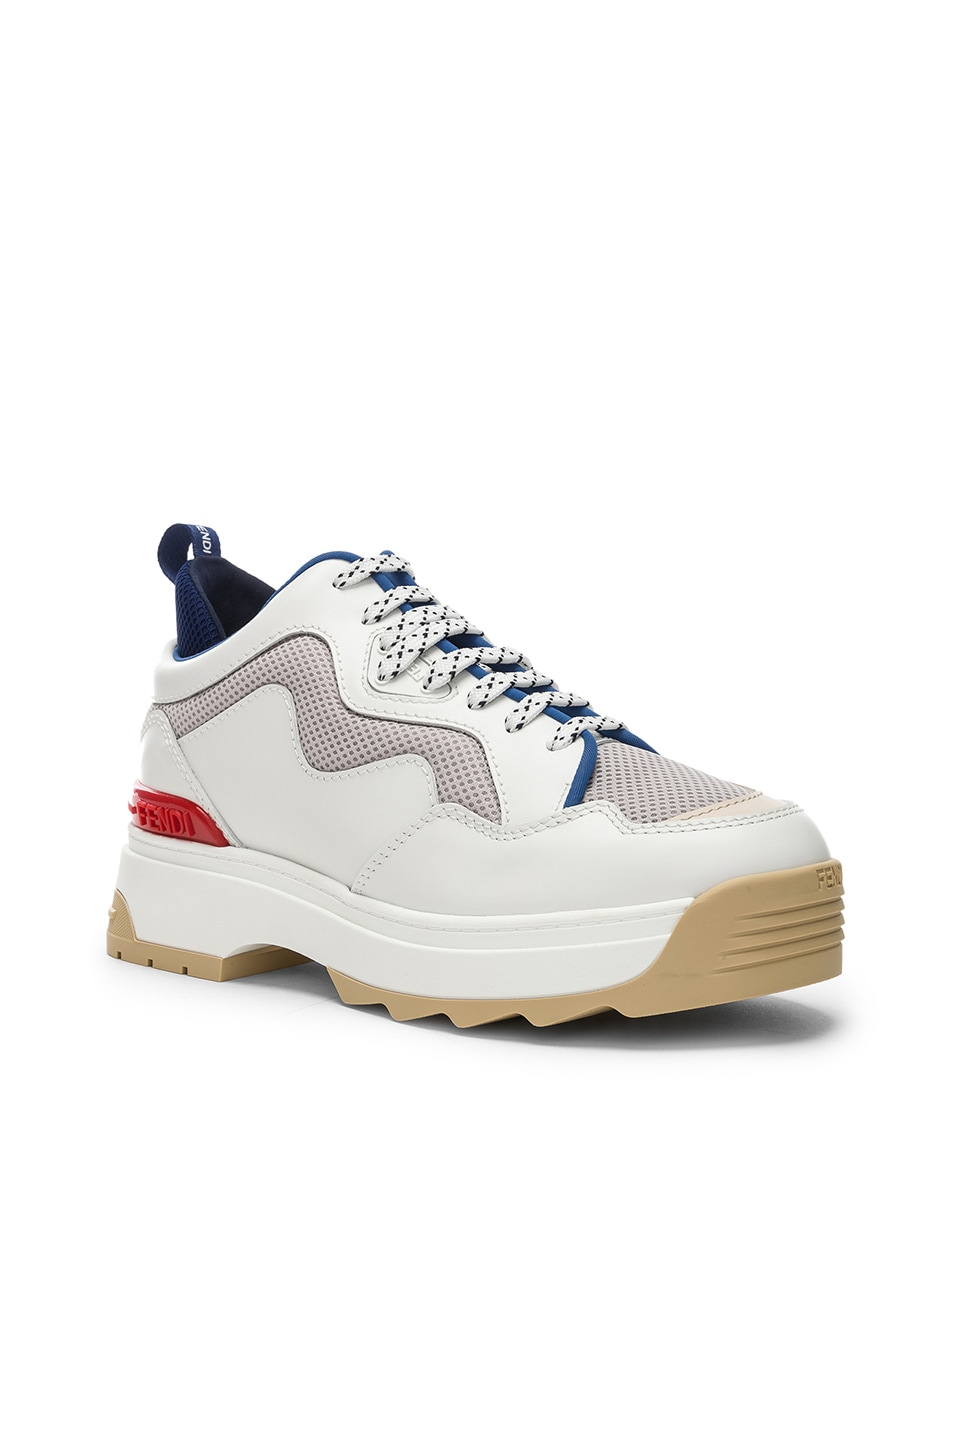 Image 2 of Fendi T-Rex Sneakers in White